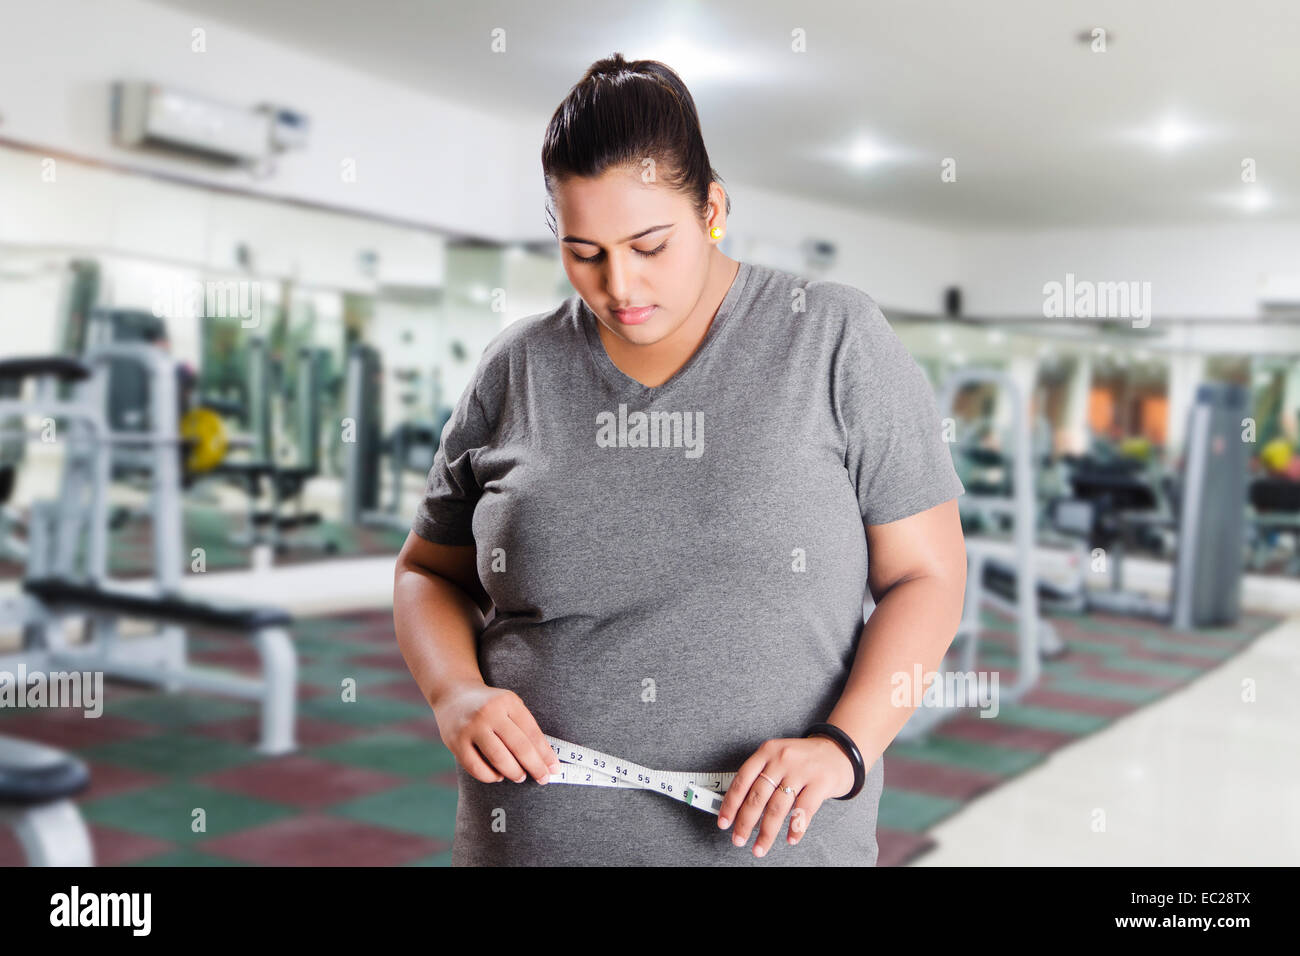 indian Obese Lady Weight Loss problem Stock Photo: 76268218